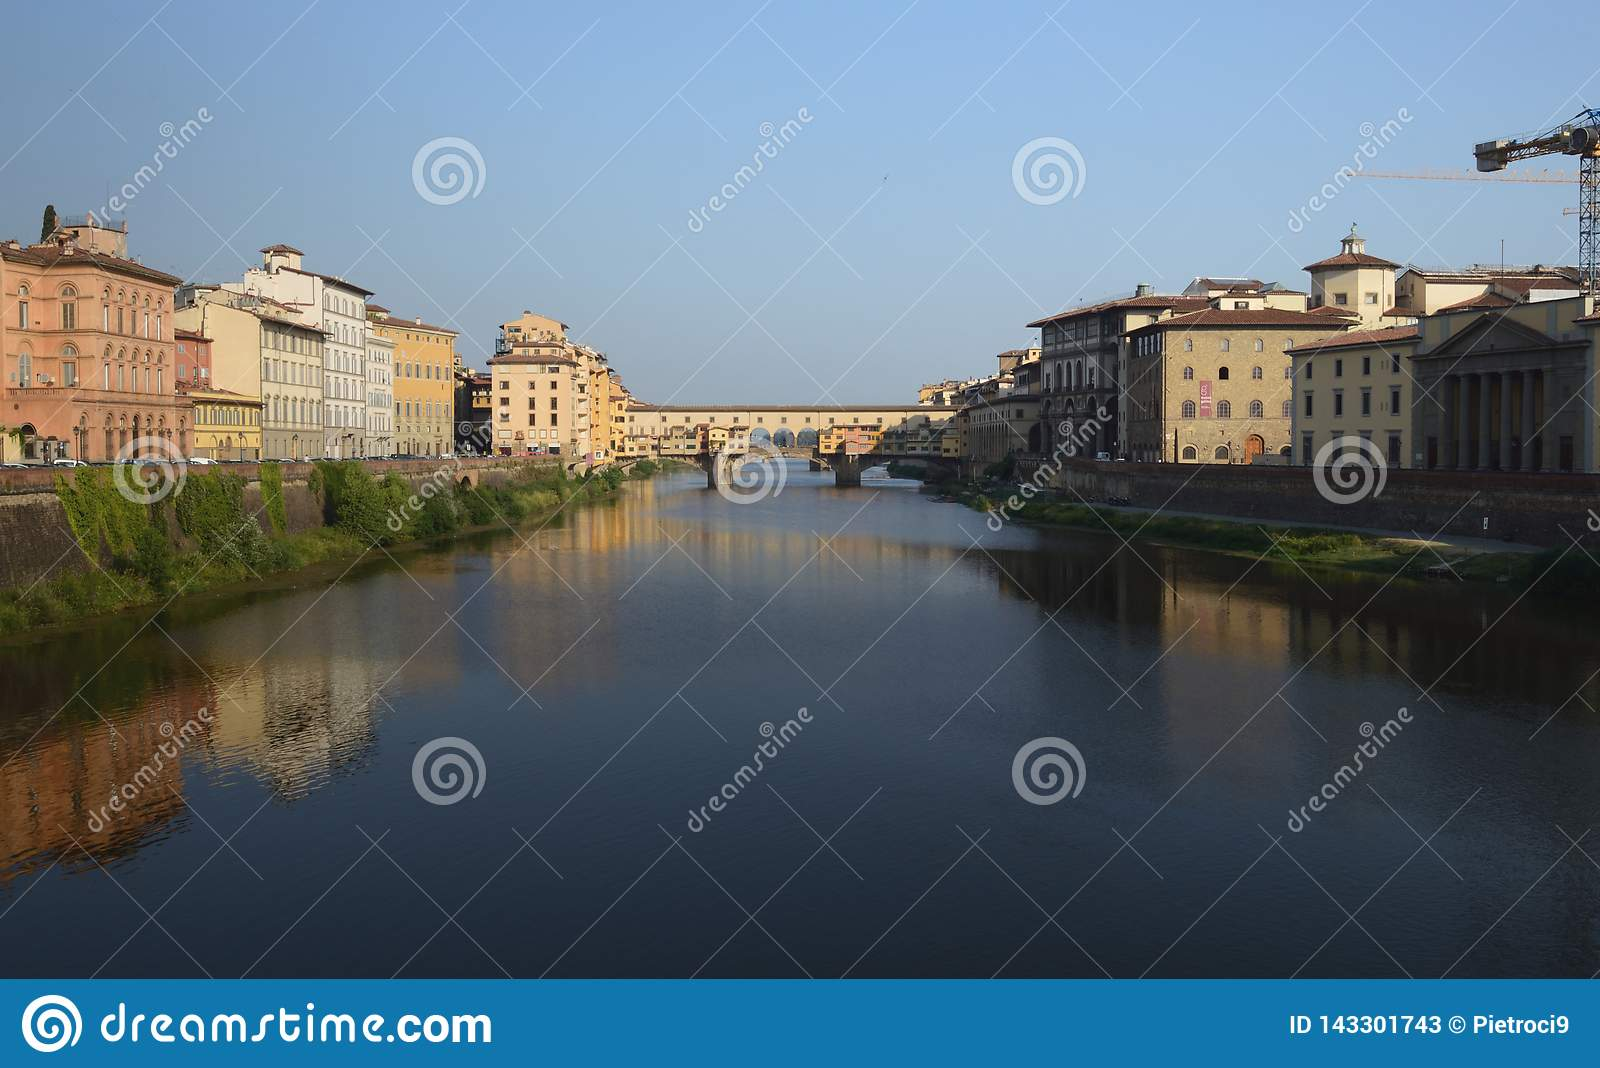 Florence is reflected in the Arno river.